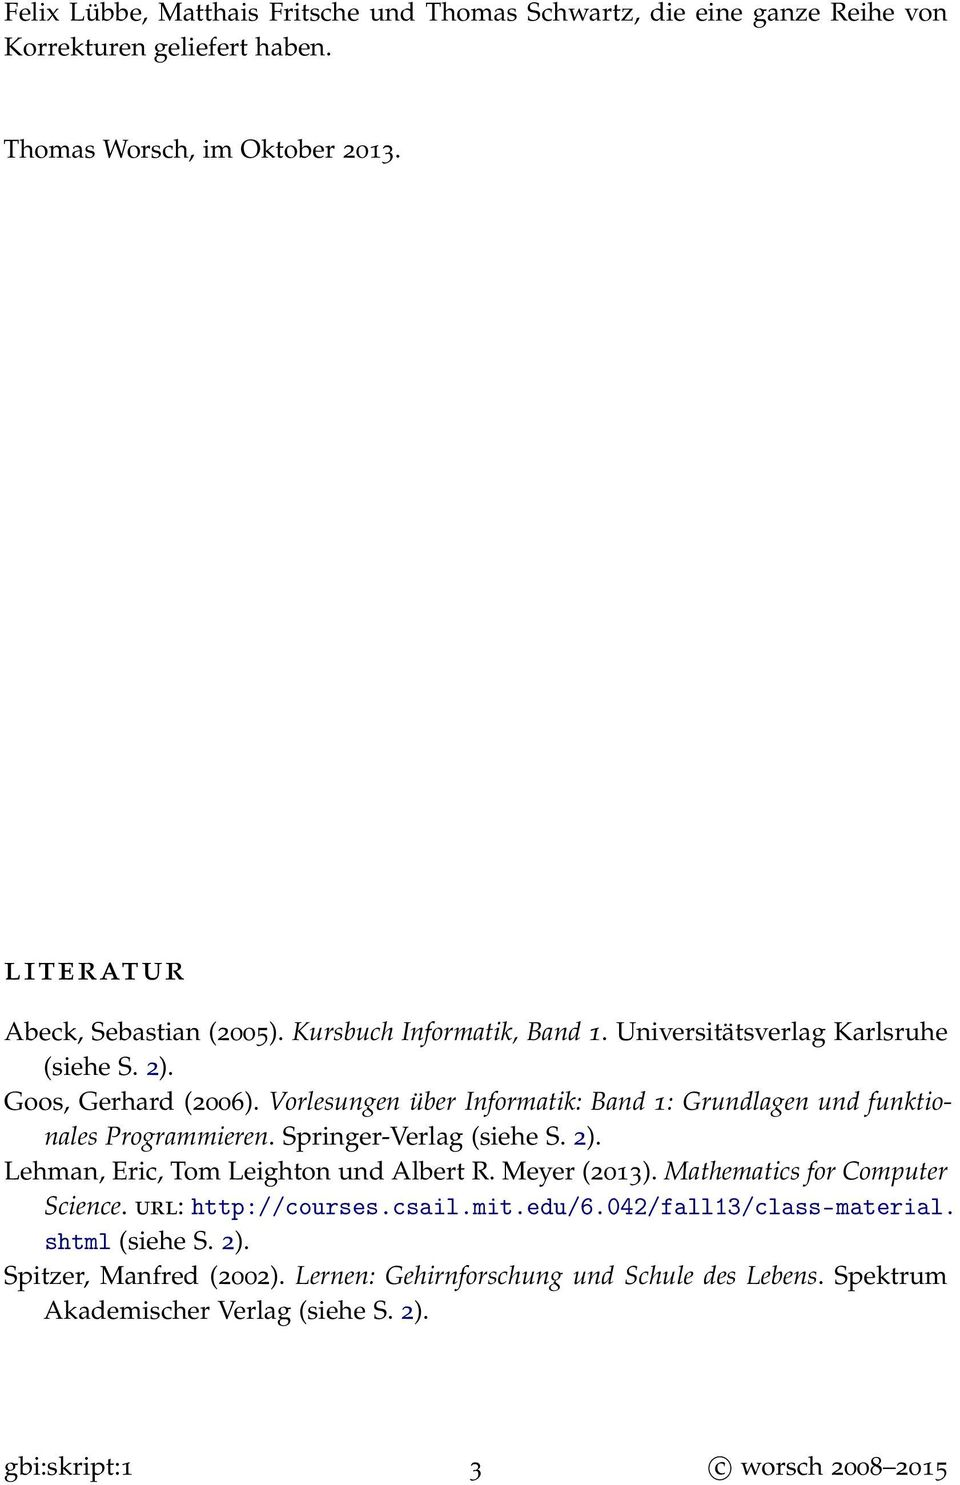 Springer-Verlag (siehe S. 2). Lehman, Eric, Tom Leighton und Albert R. Meyer (2013). Mathematics for Computer Science. url: http://courses.csail.mit.edu/6.